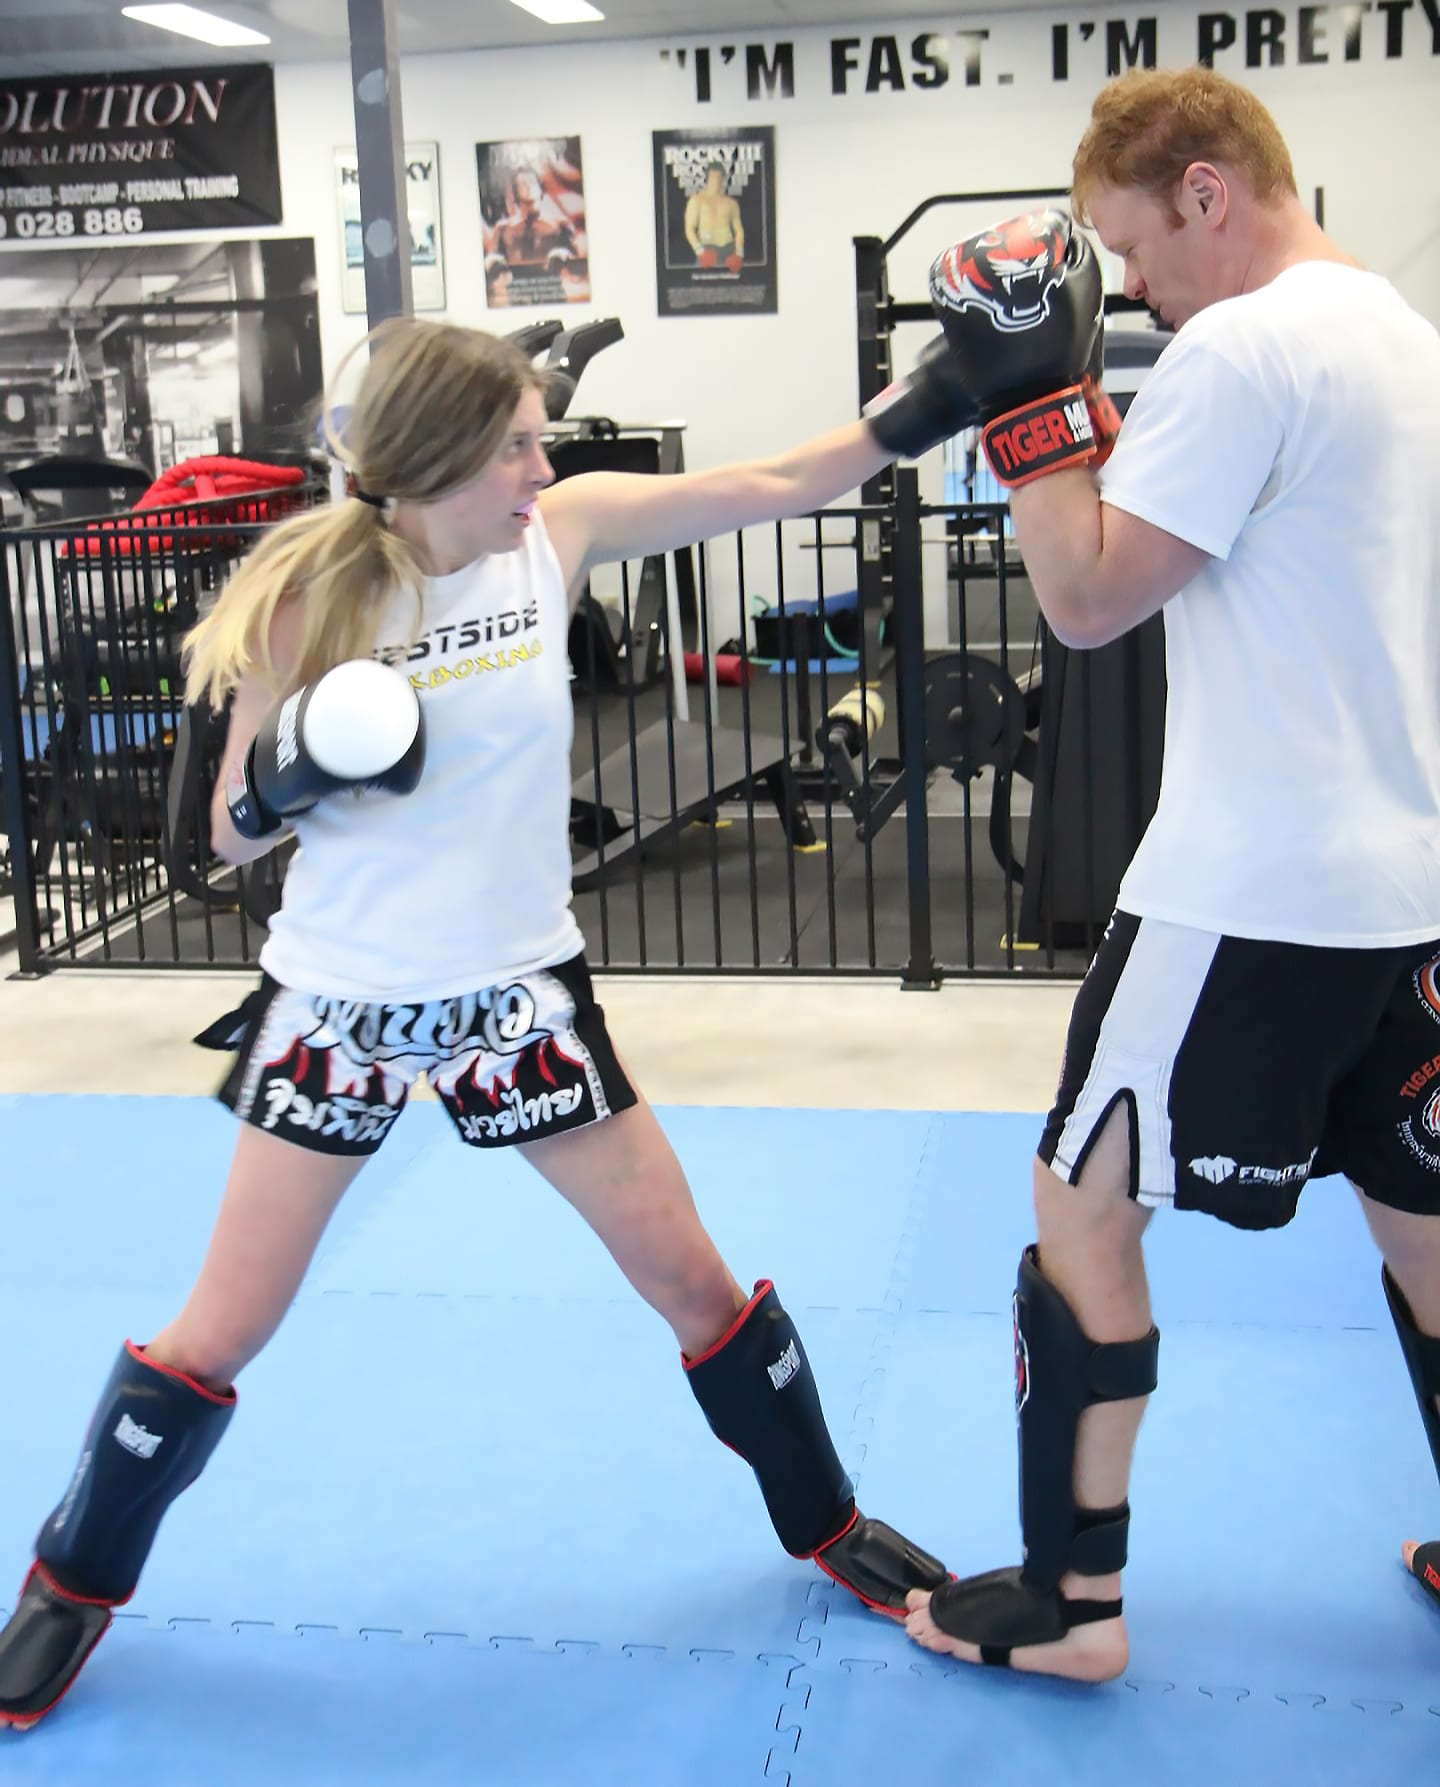 Lucy De Dulin in O'Connor - Westside Kickboxing